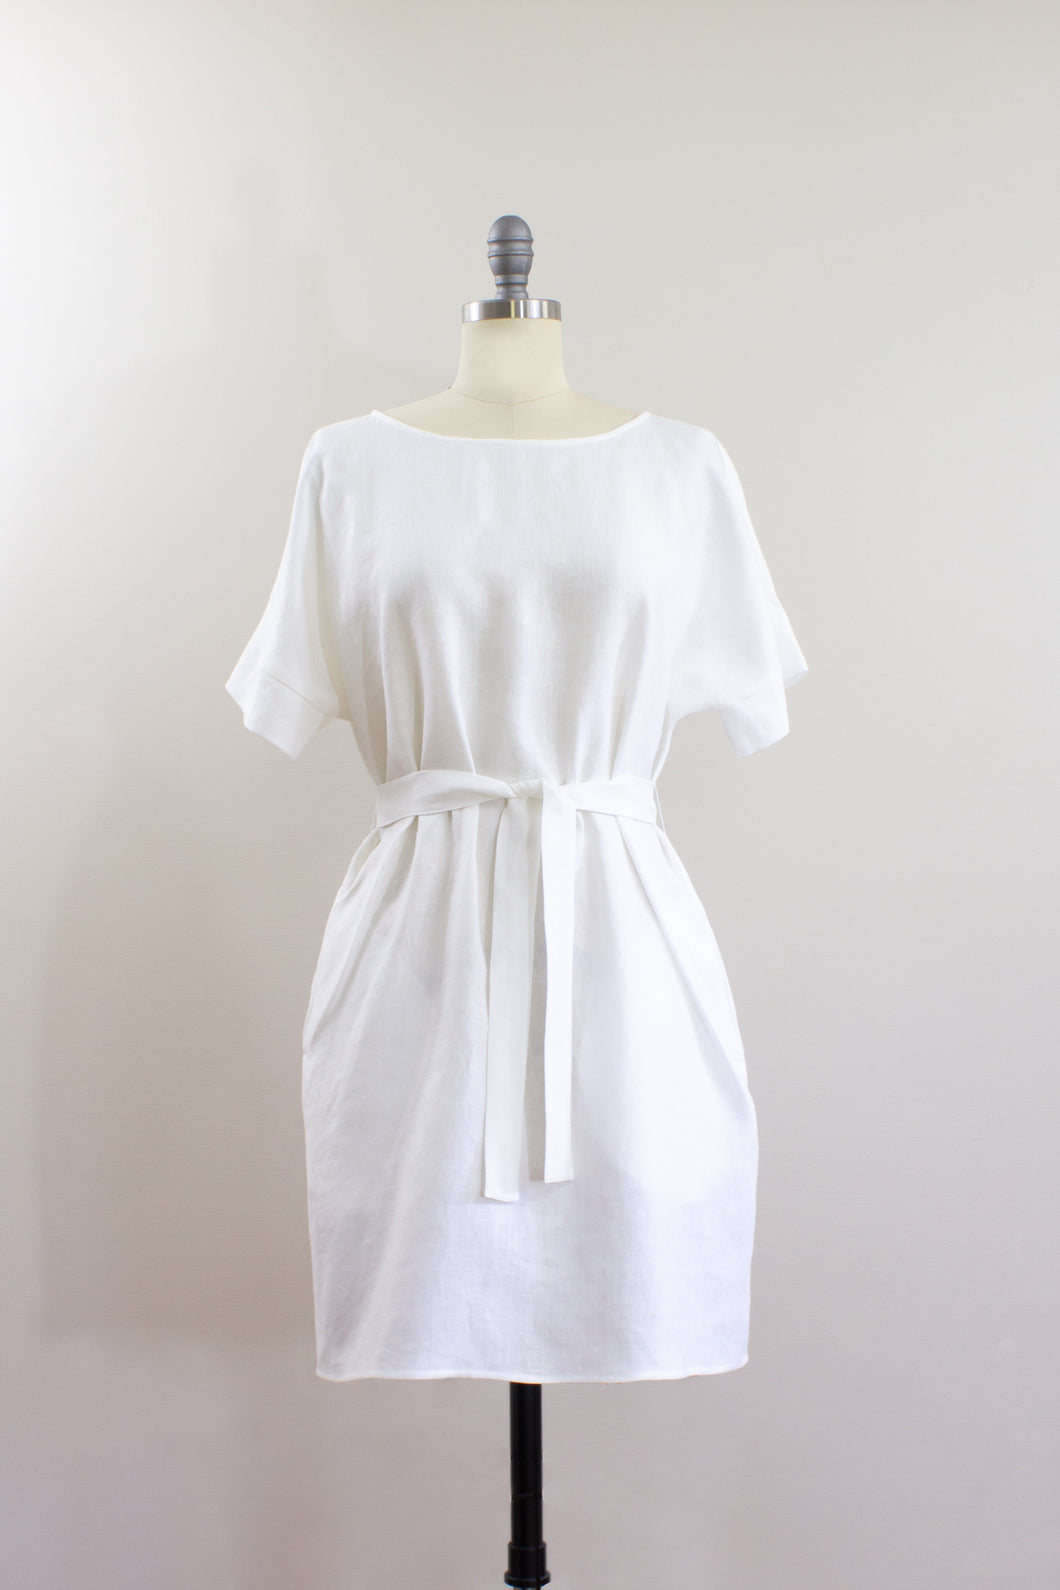 Elisabetta Bellu SS2020 Sandy handmade white linen loose fit belted short kimono dress front